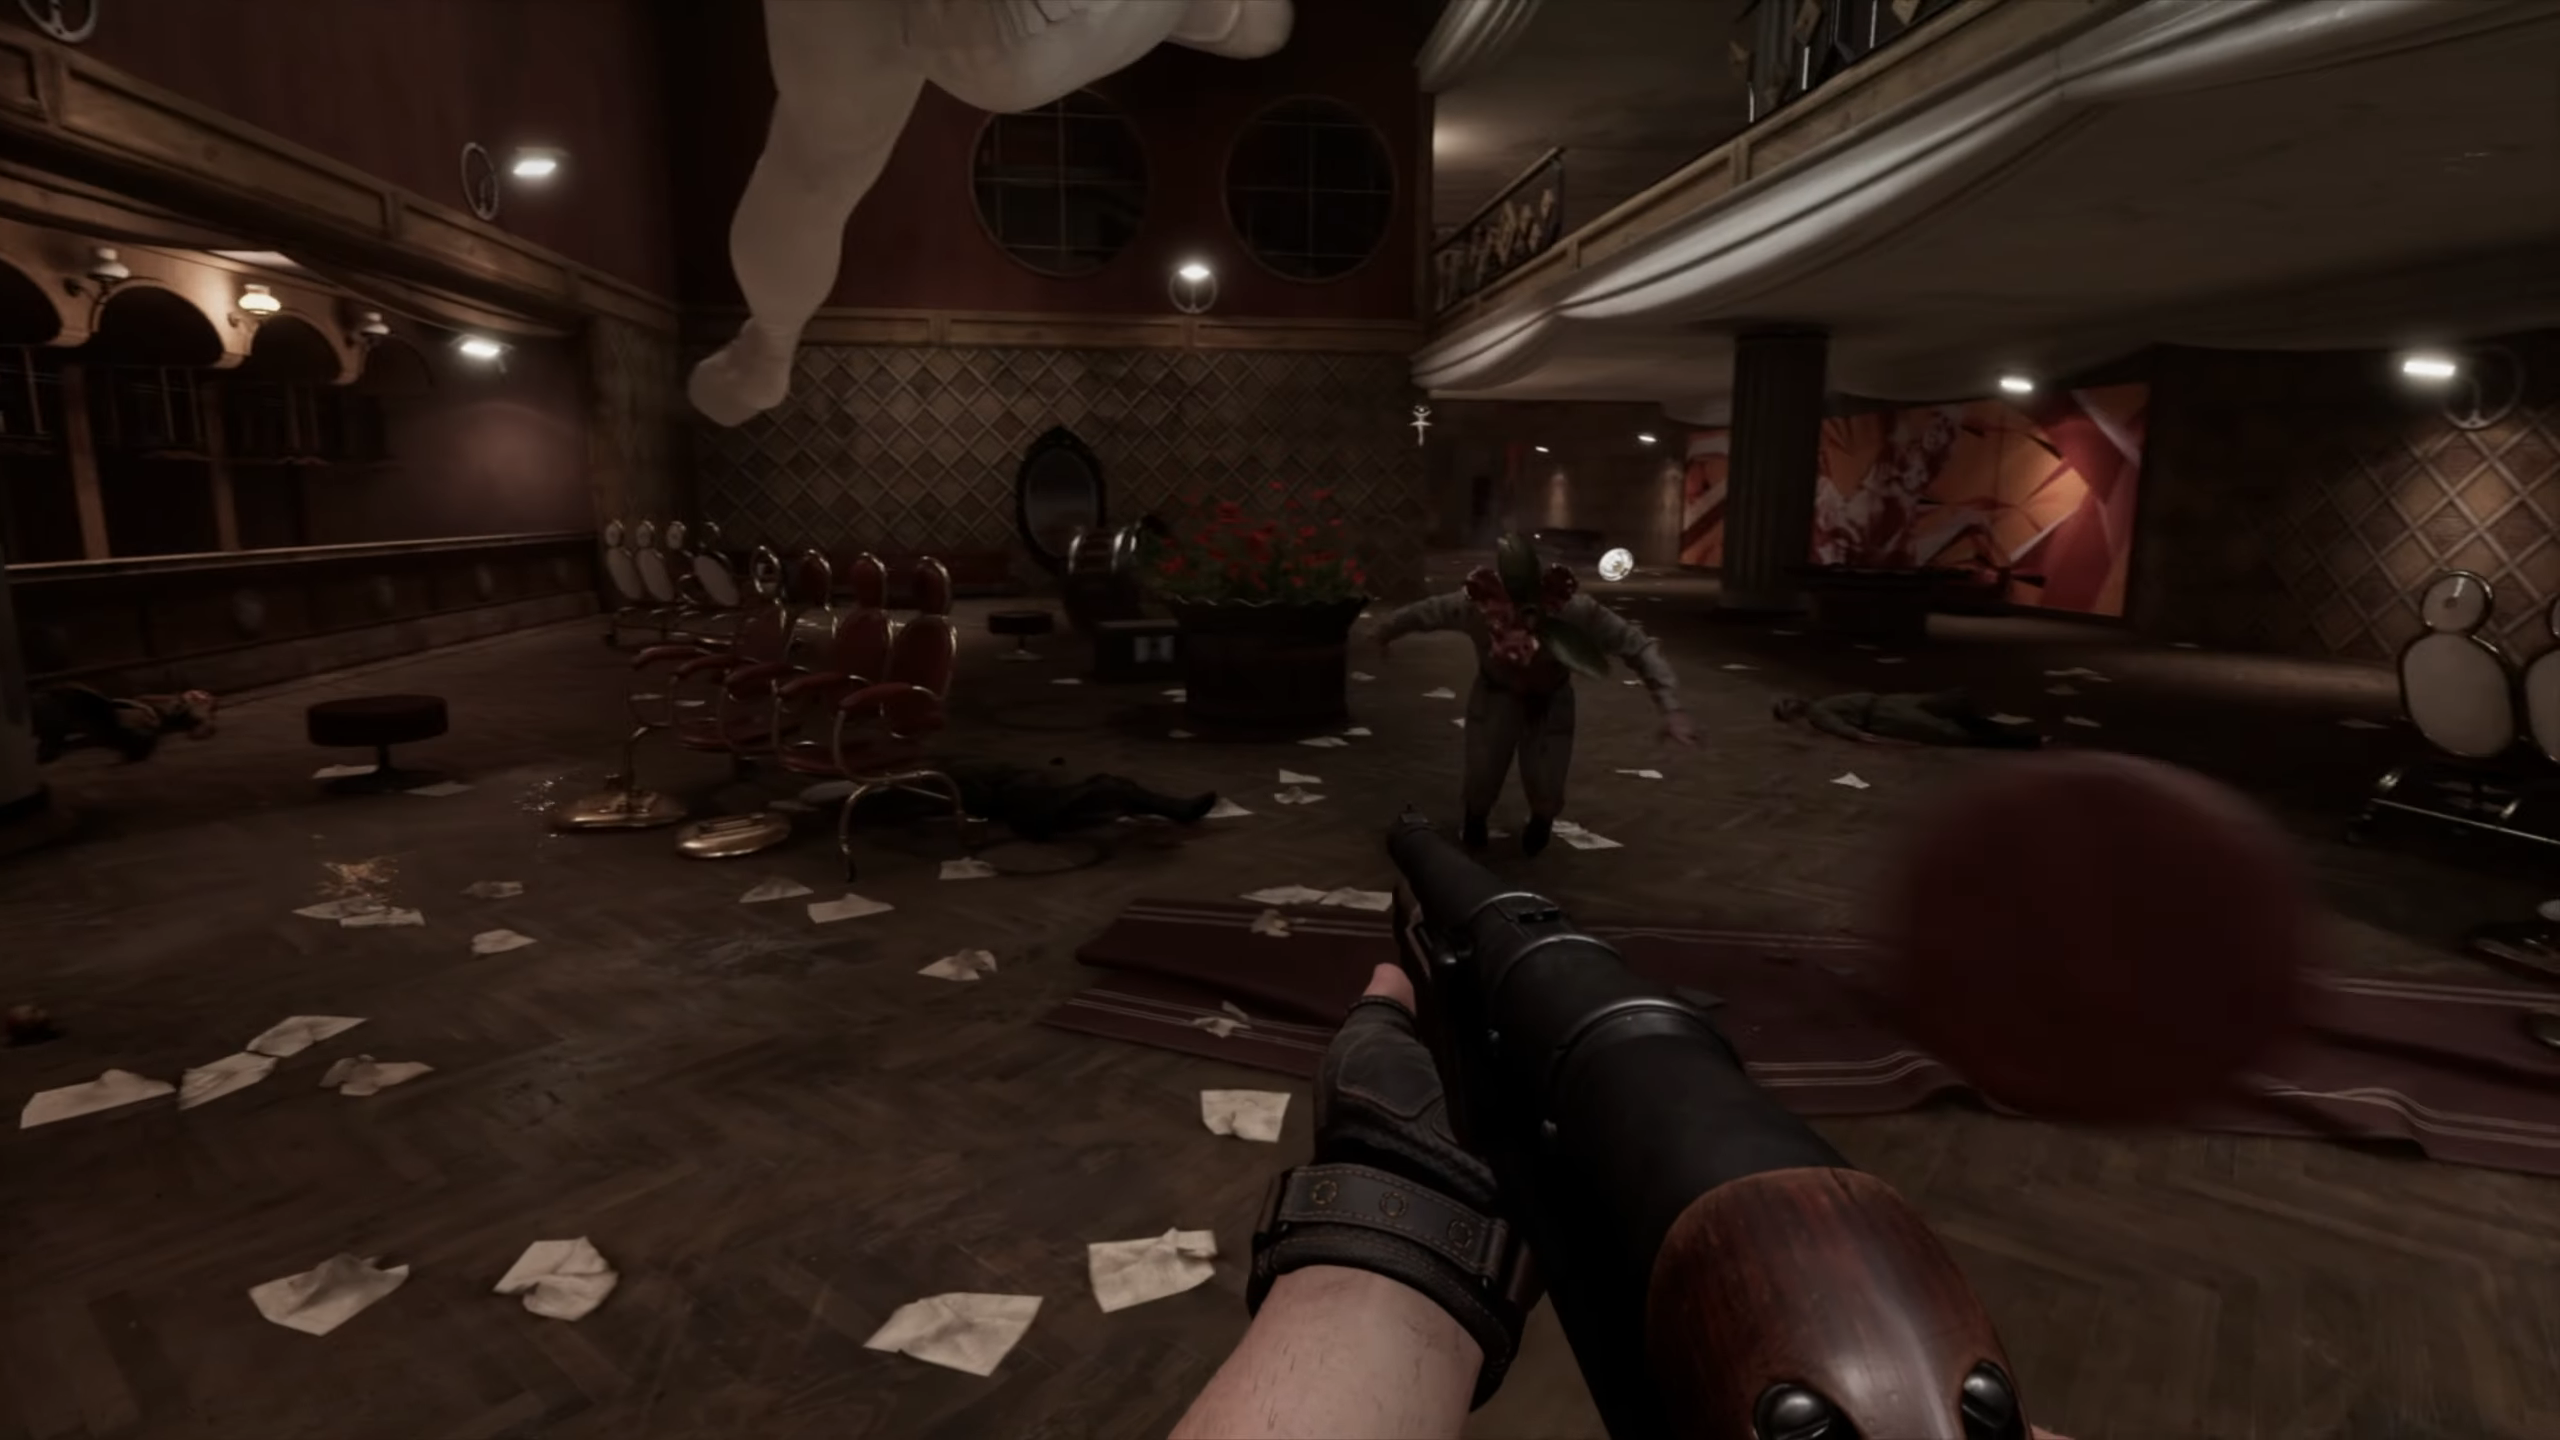 Media asset in full size related to 3dfxzone.it news item entitled as follows: NVIDIA pubblica il gameplay trailer di Atomic Heart che supporta RTX e DLSS | Image Name: news31582_Atomic-Heart_EXCLUSIVE-GeForce-RTX-PC-Game-Reveal-Screenshot_2.png